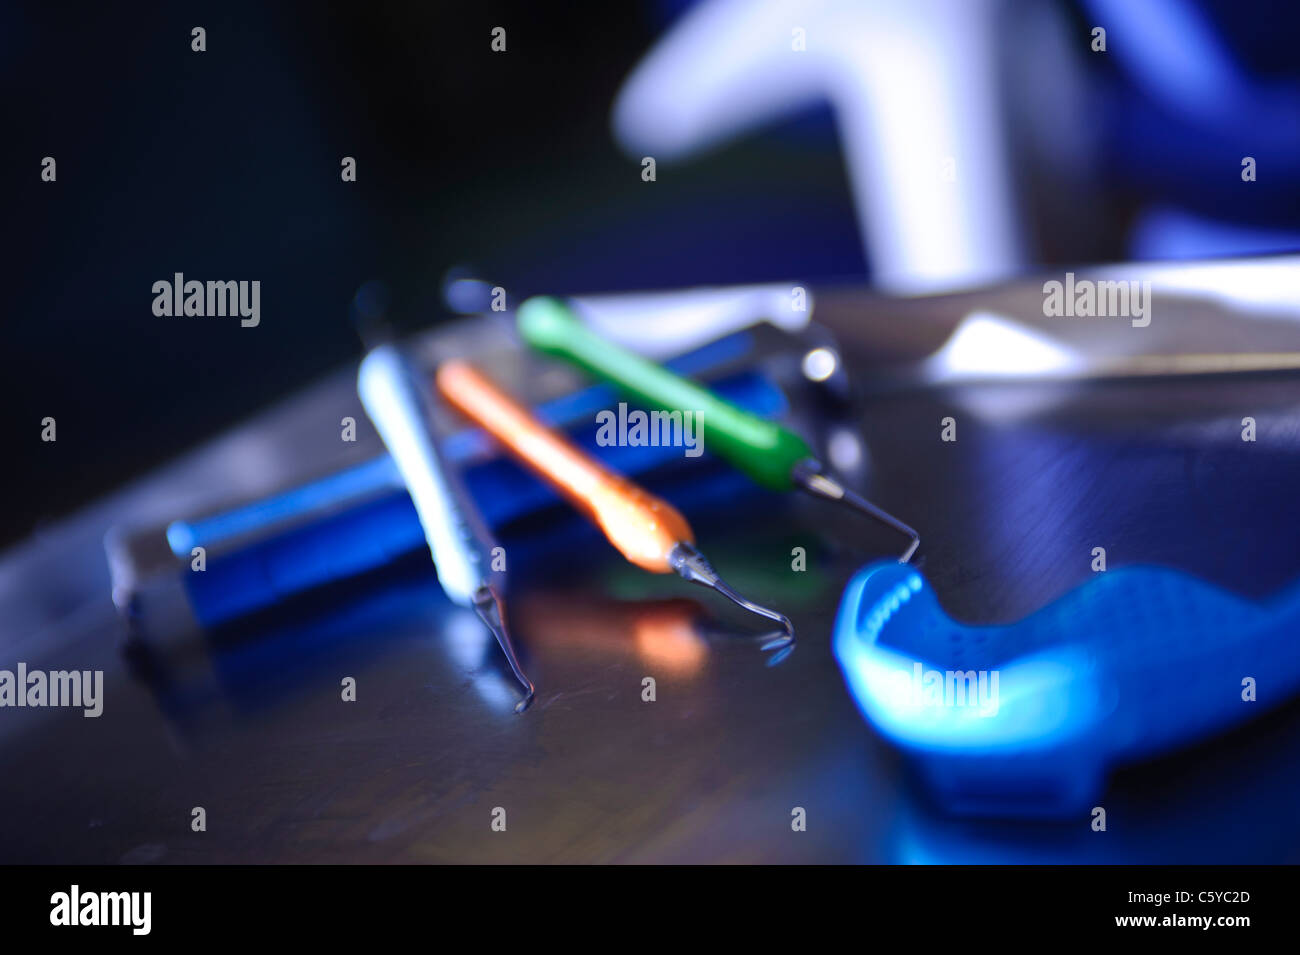 Sharp pointed sickle contra angled dental probes for dentists and gum shield - Stock Image